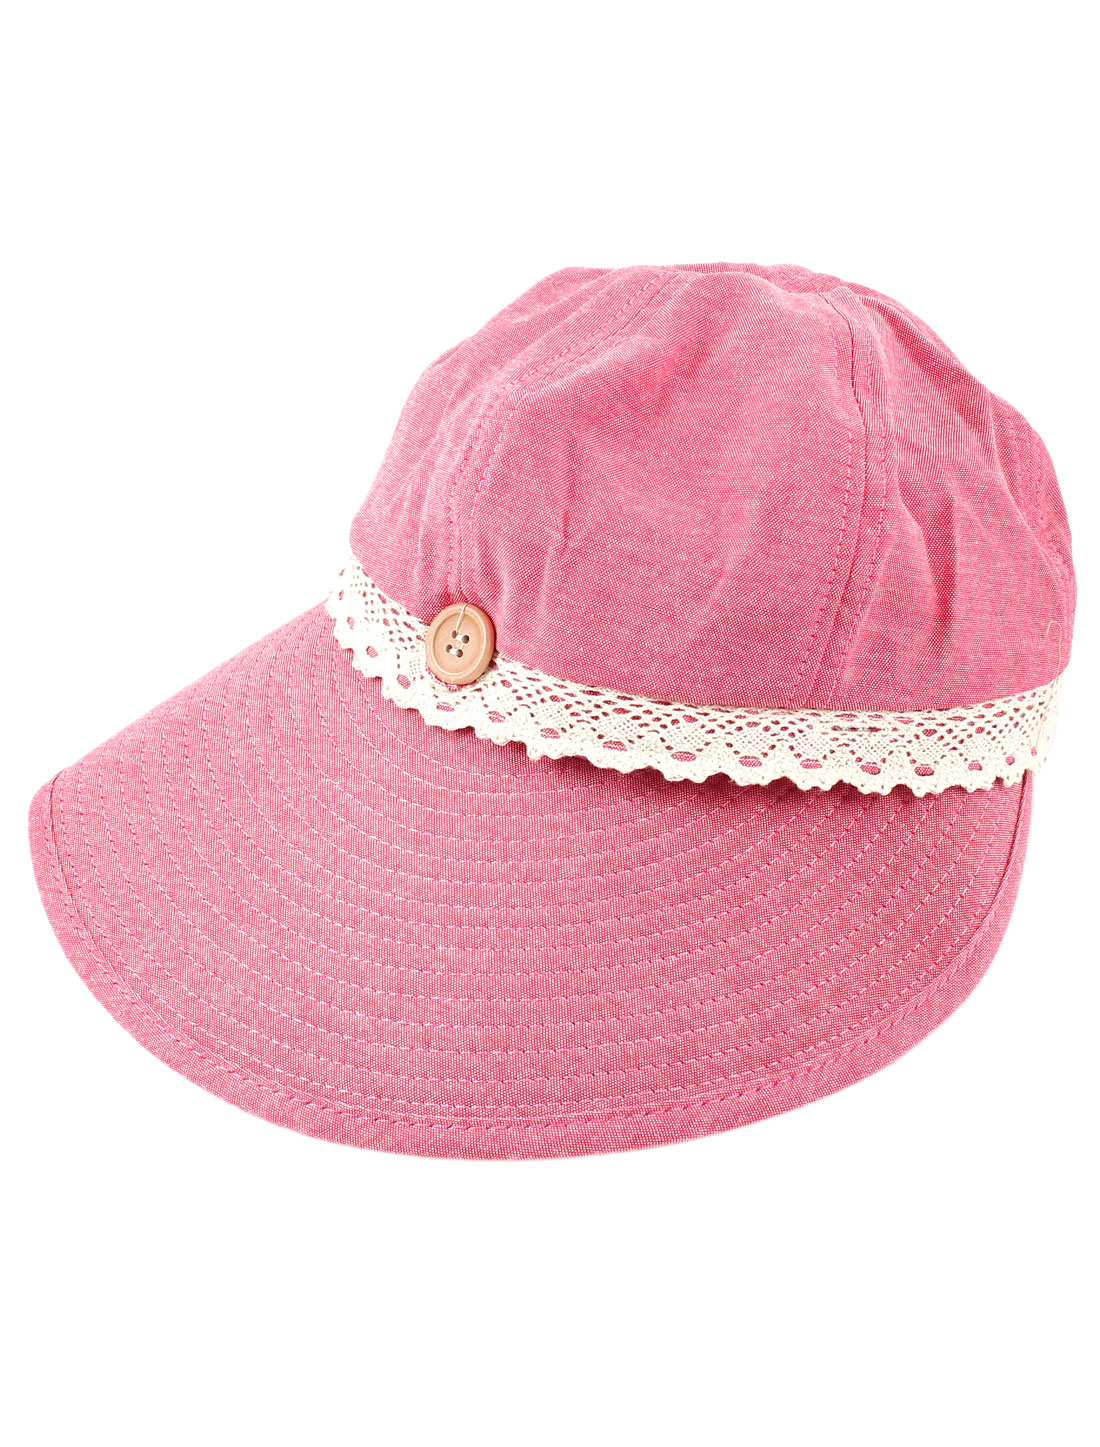 Woman Detachable Buttons Decor Wide Brim Visor Cap Summer Hat Pink